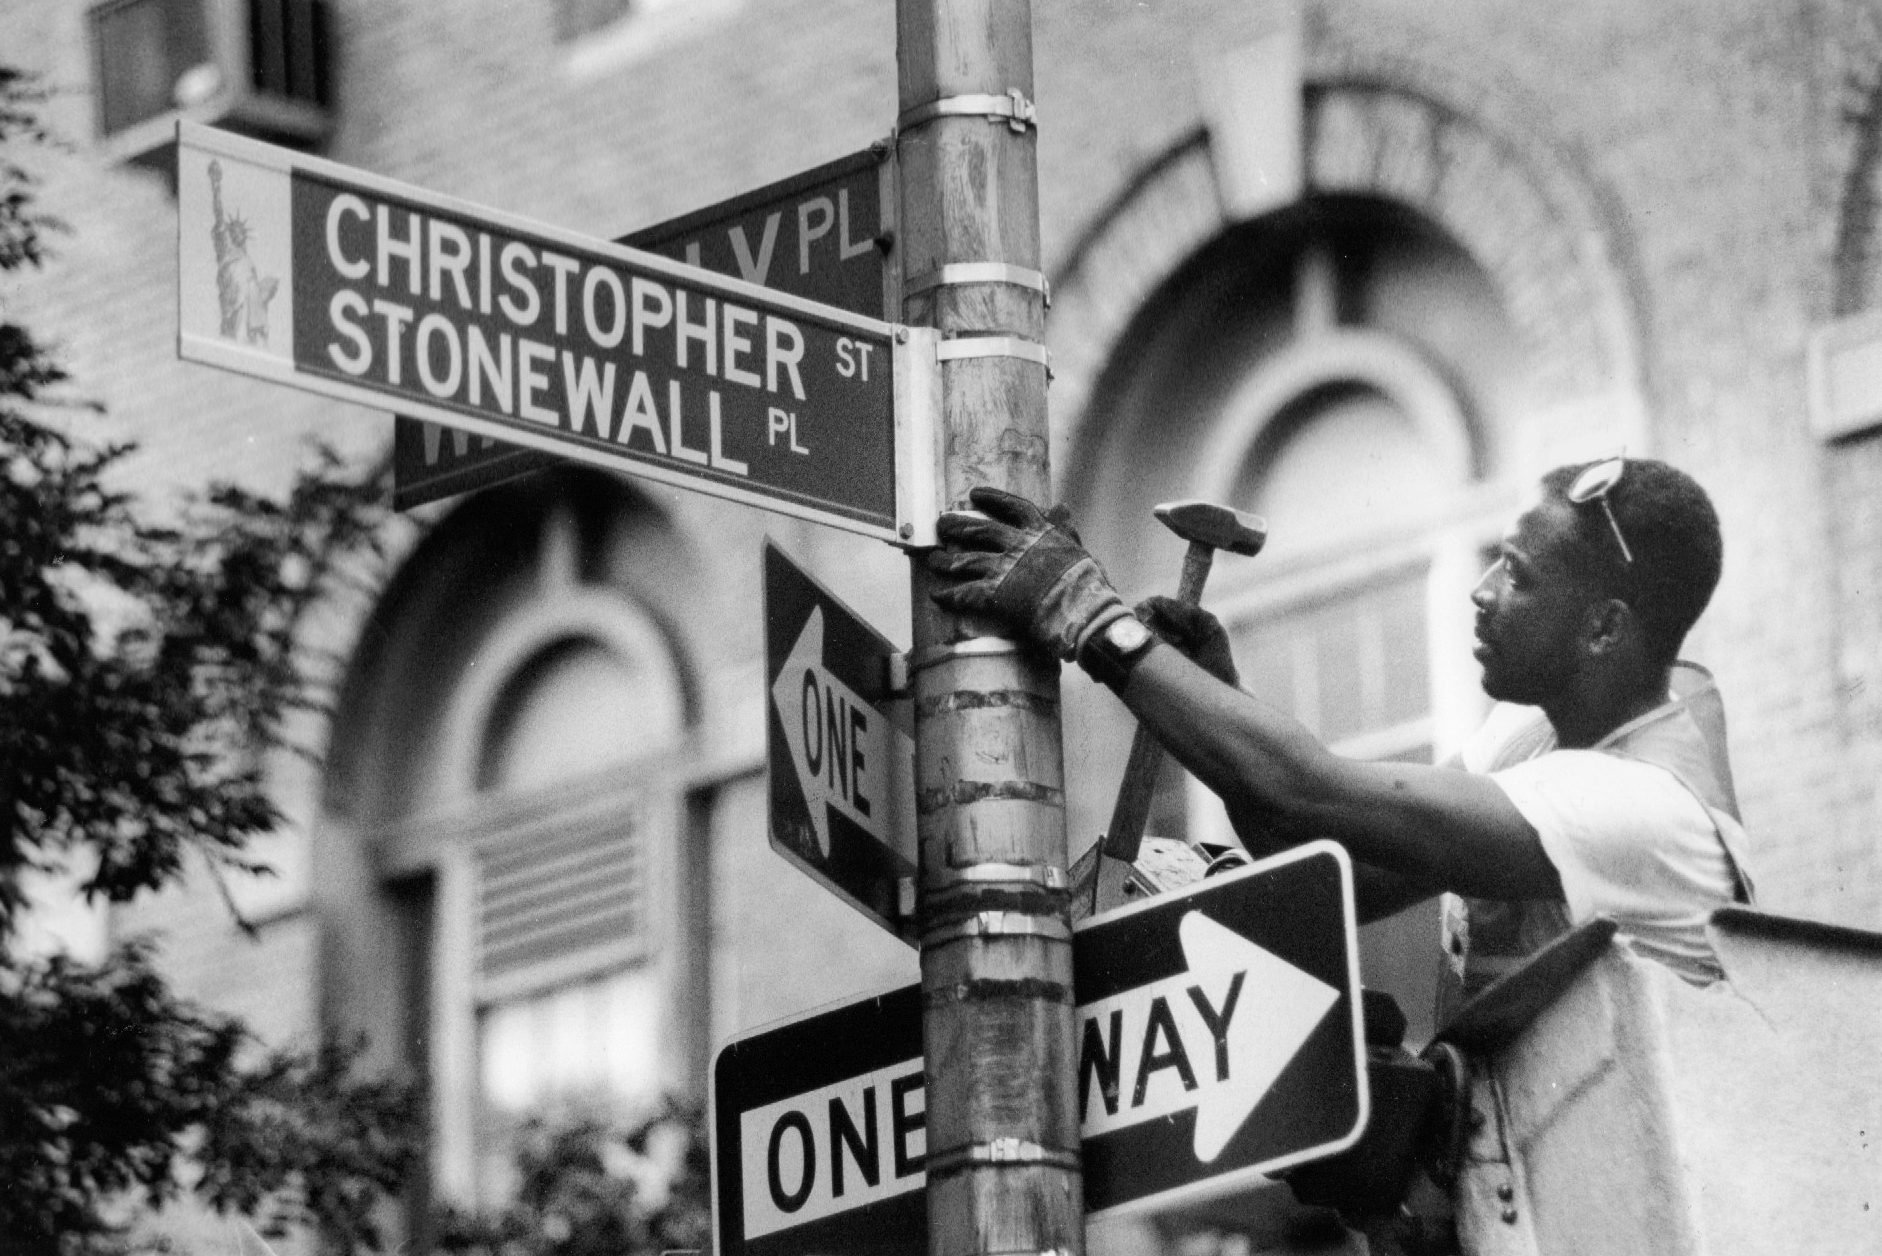 NYC street sign commemorating Stonewall uprising installed in 1989